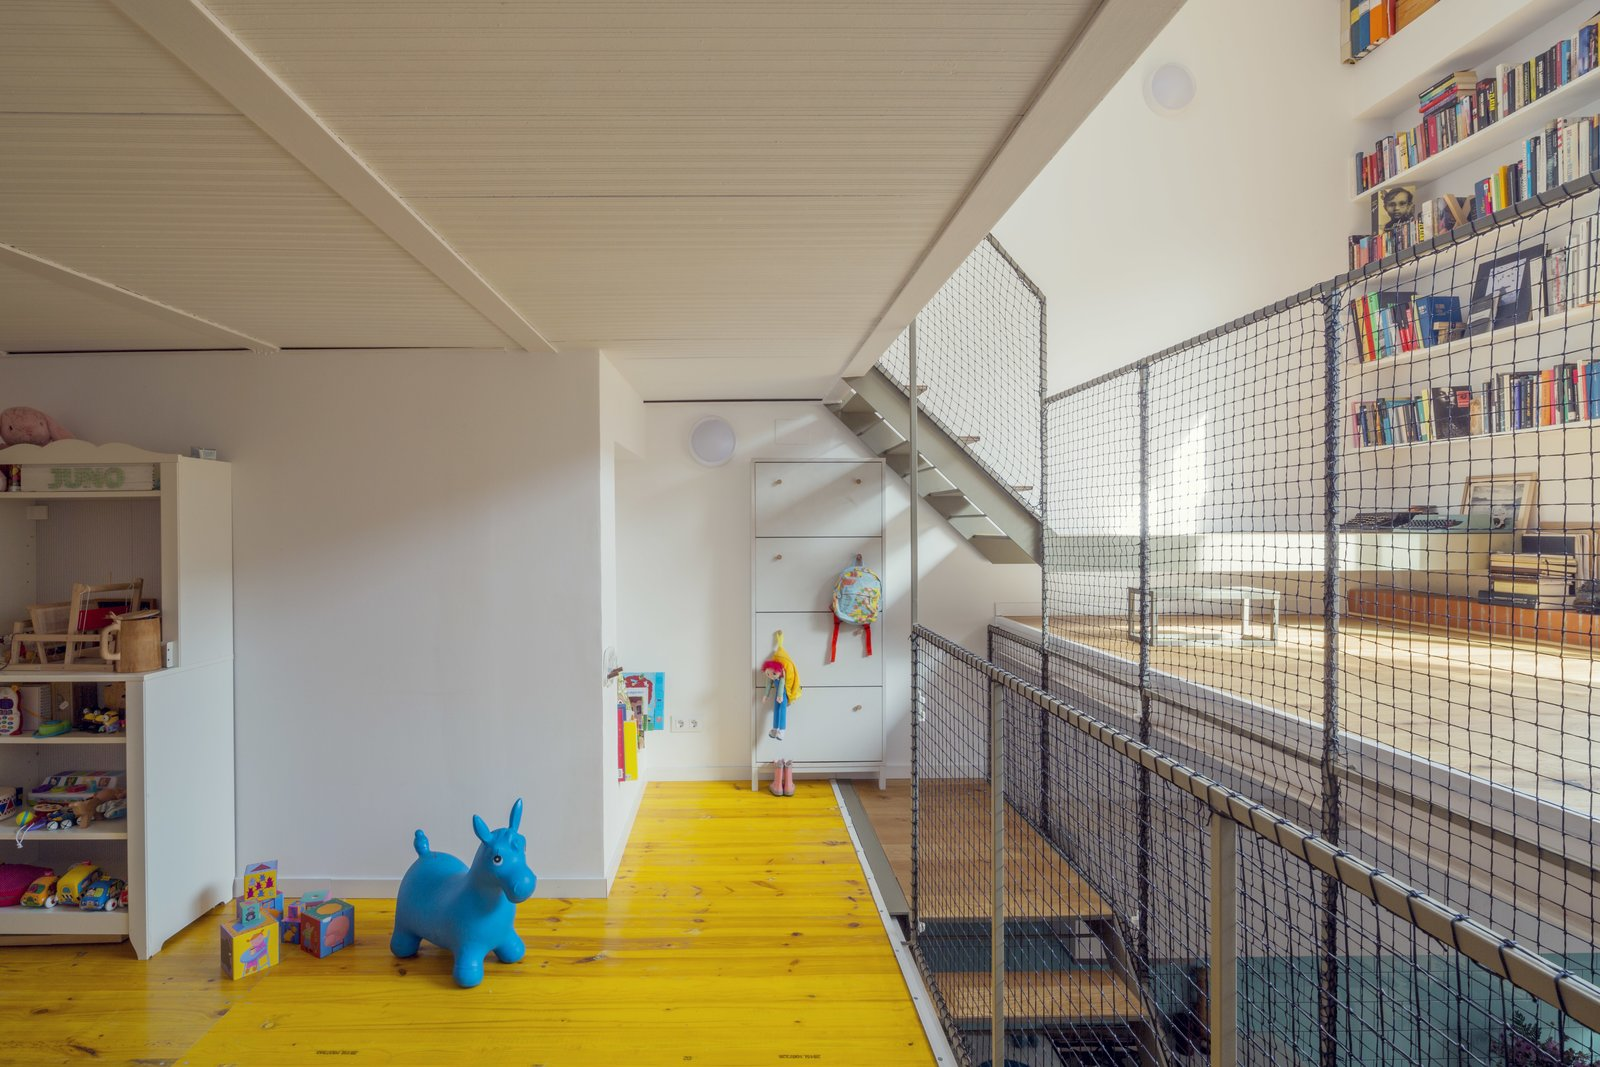 """By creating so much open space, the family can feel connected even while on separate floors. """"We were looking for an easy and fast connection among the four levels,"""" says the firm.  A 16-Foot-Wide Barcelona Row House Gets Creative to Stay Bright and Airy by Alex Vuocolo"""